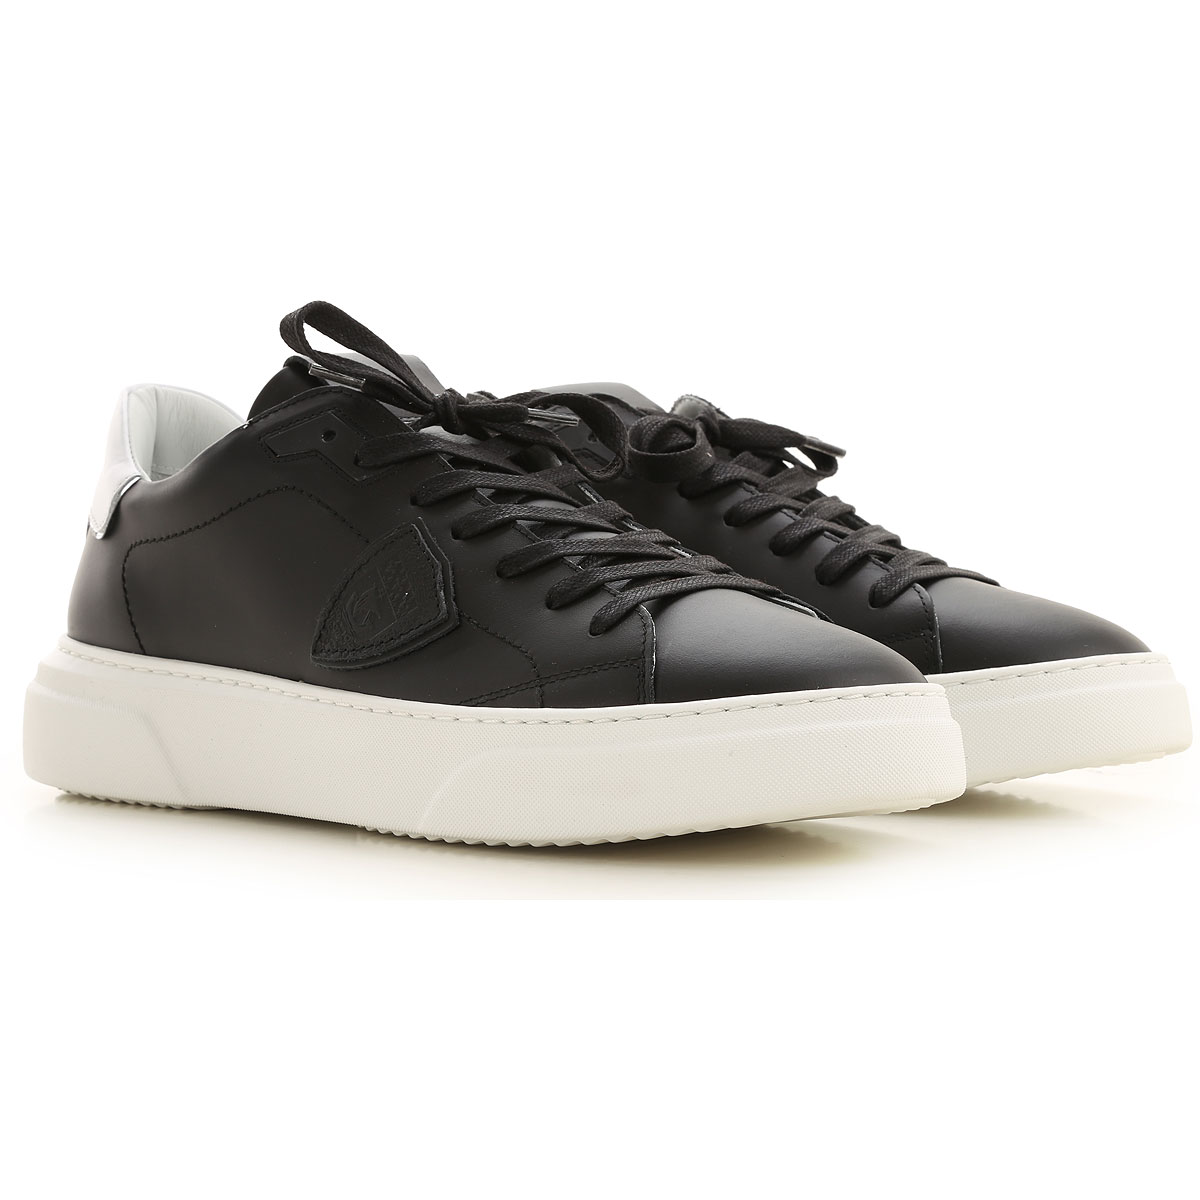 Philippe Model Sneakers for Men On Sale, Black, Leather, 2019, 10 11.5 8 9